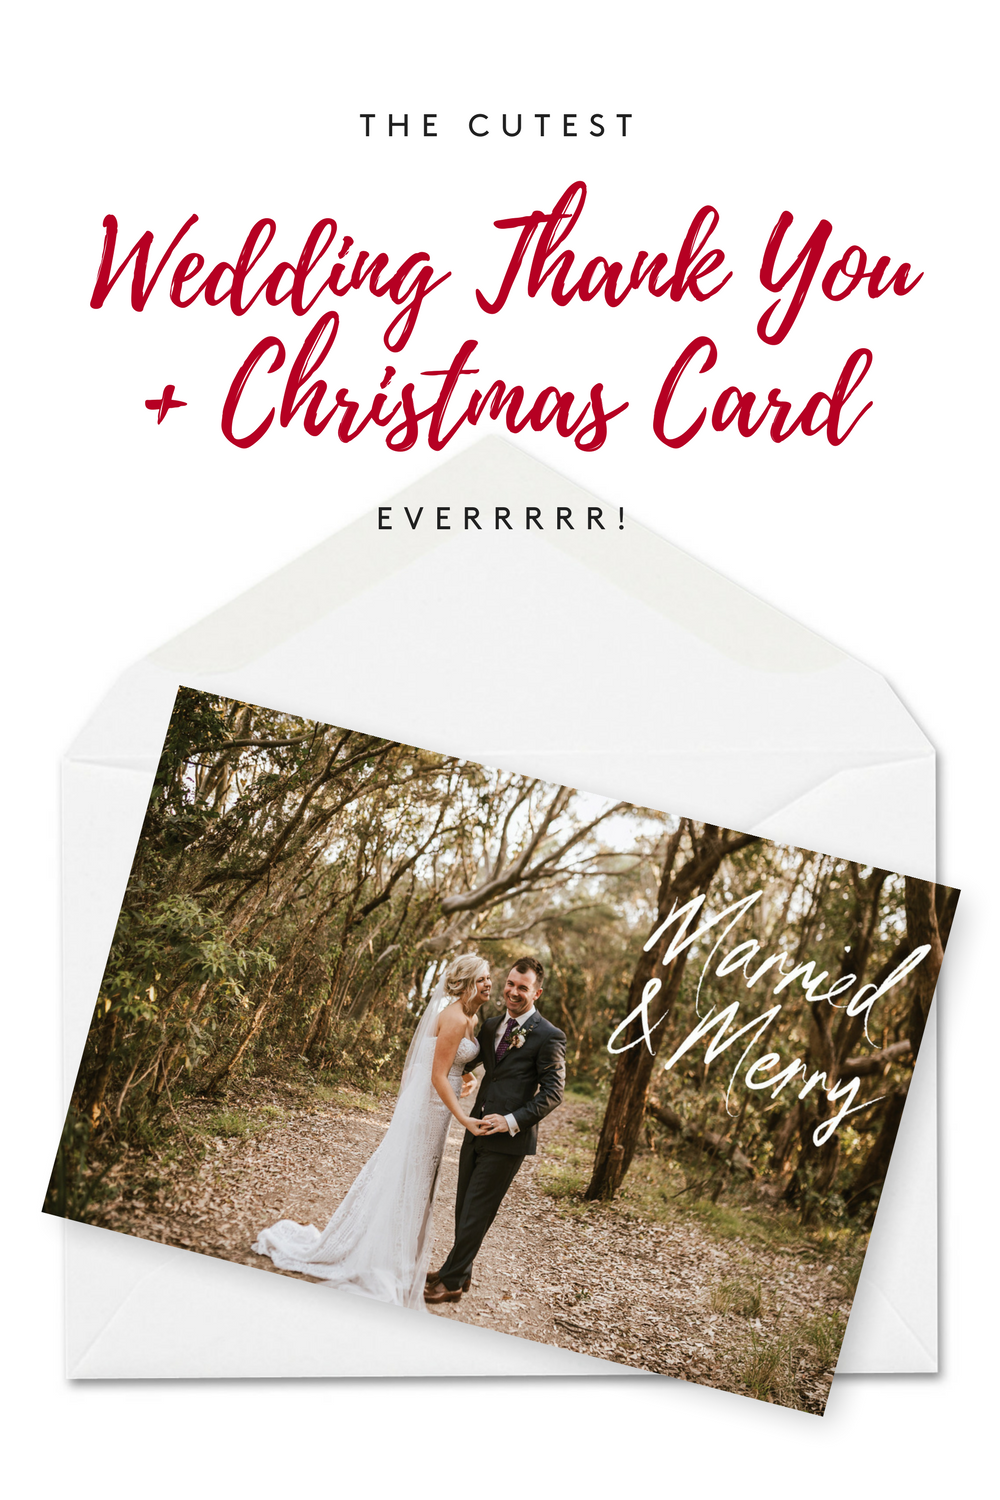 Personalised Wedding Thank You Cards with Photos | Pinterest | Merry ...